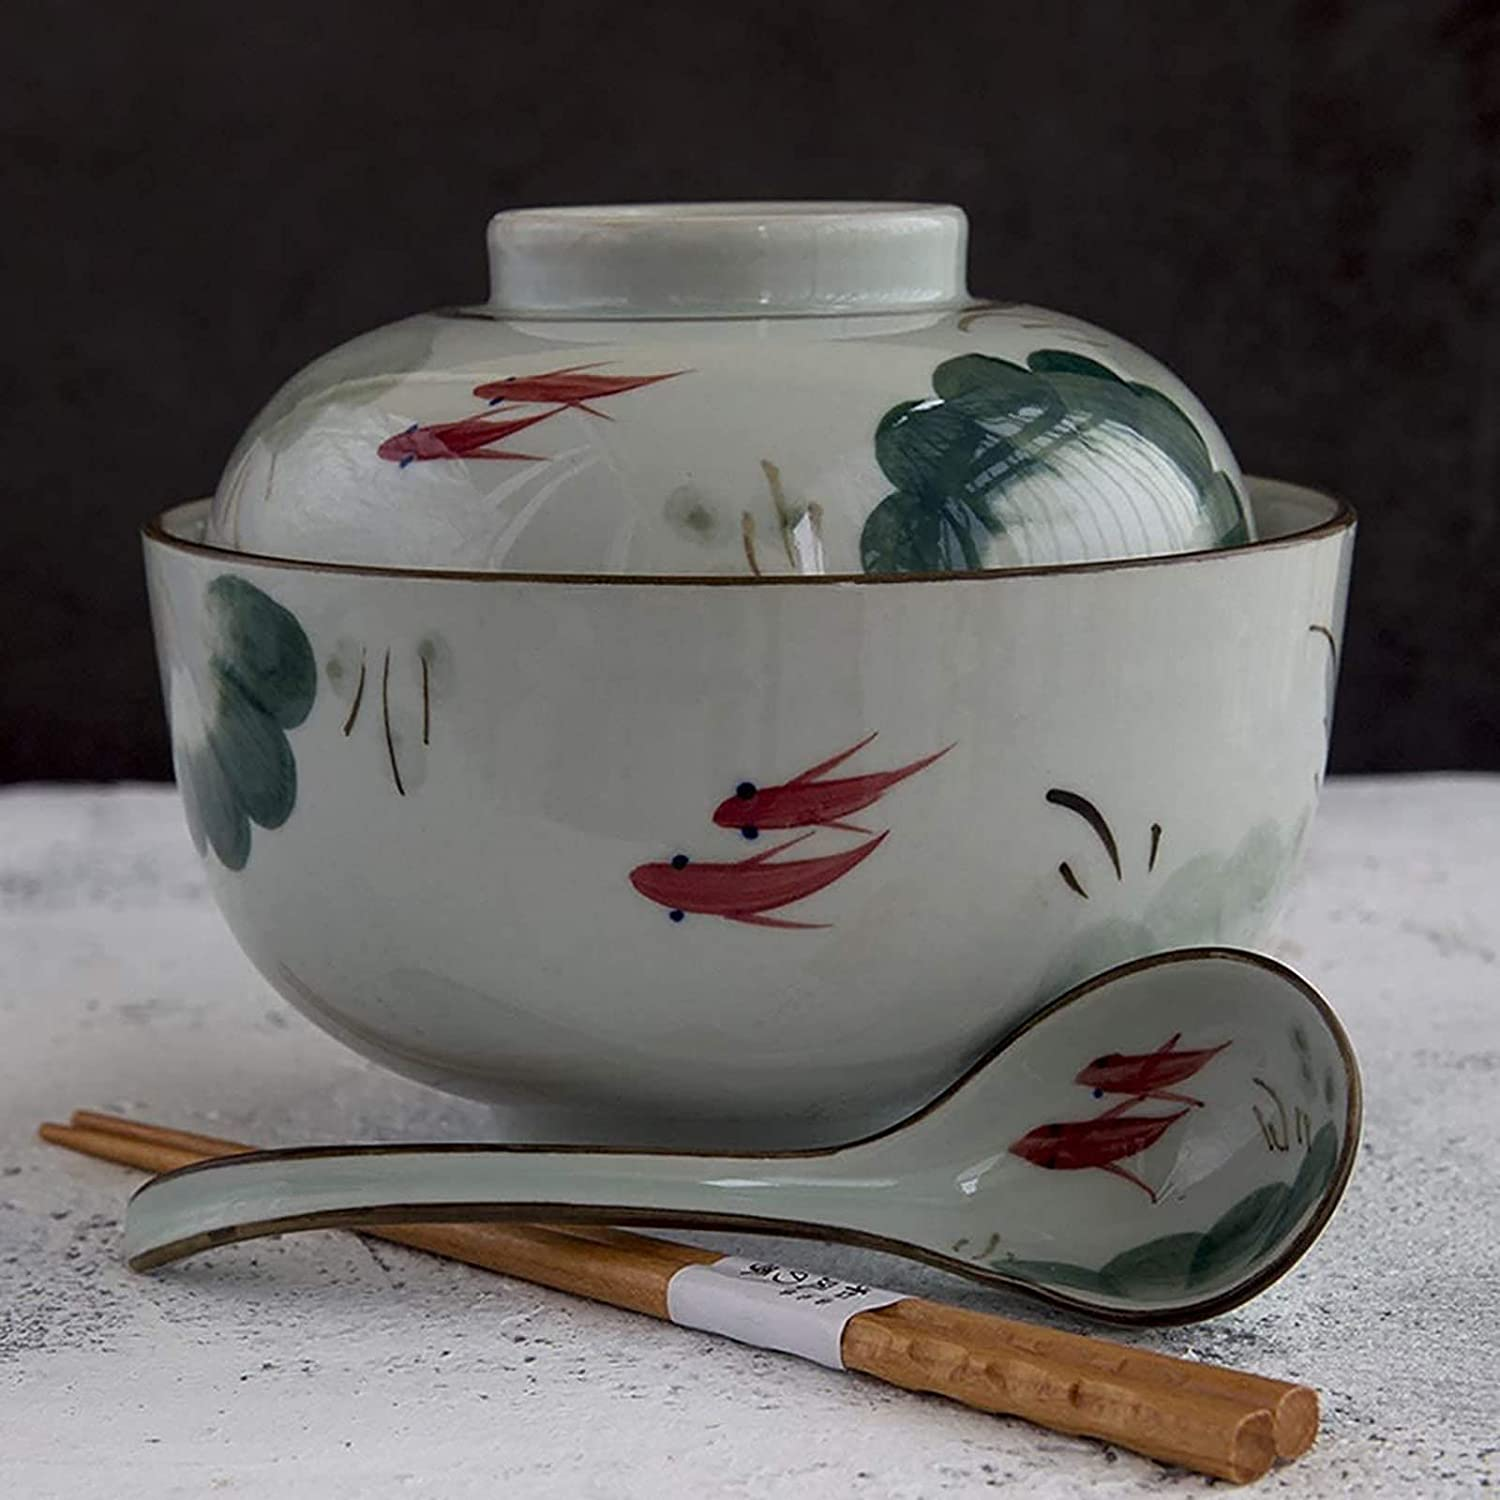 NBXLHAO Rice Ranking Credence TOP10 Bowls Hand-Painted Ceramic Bowl lid with Milk Large